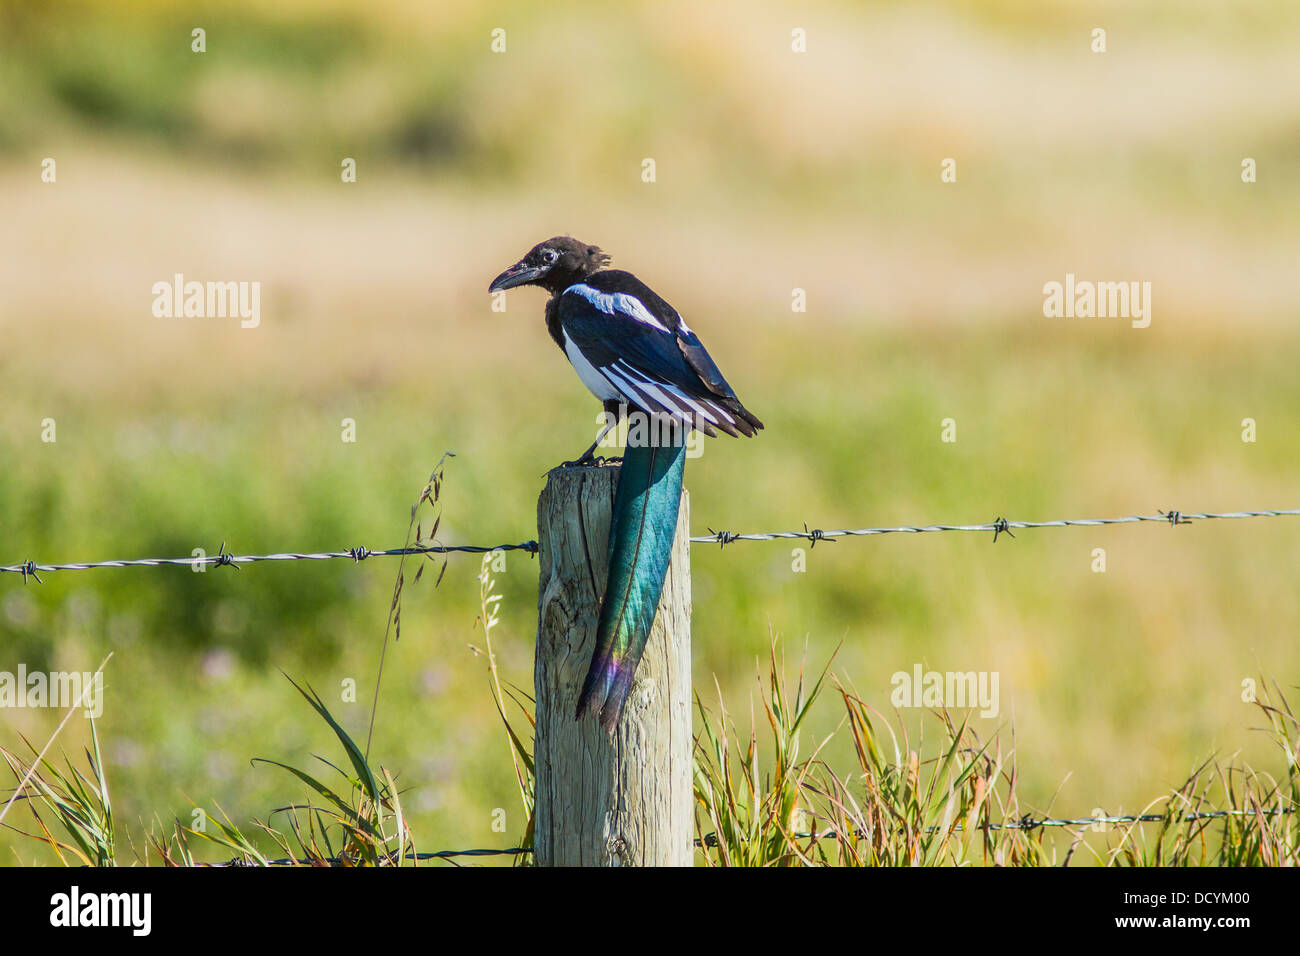 Black-billed Magpie (Pica hudsonia) Colorful, portrait of magpie, with long pretty blue tail, sitting on fence post. - Stock Image